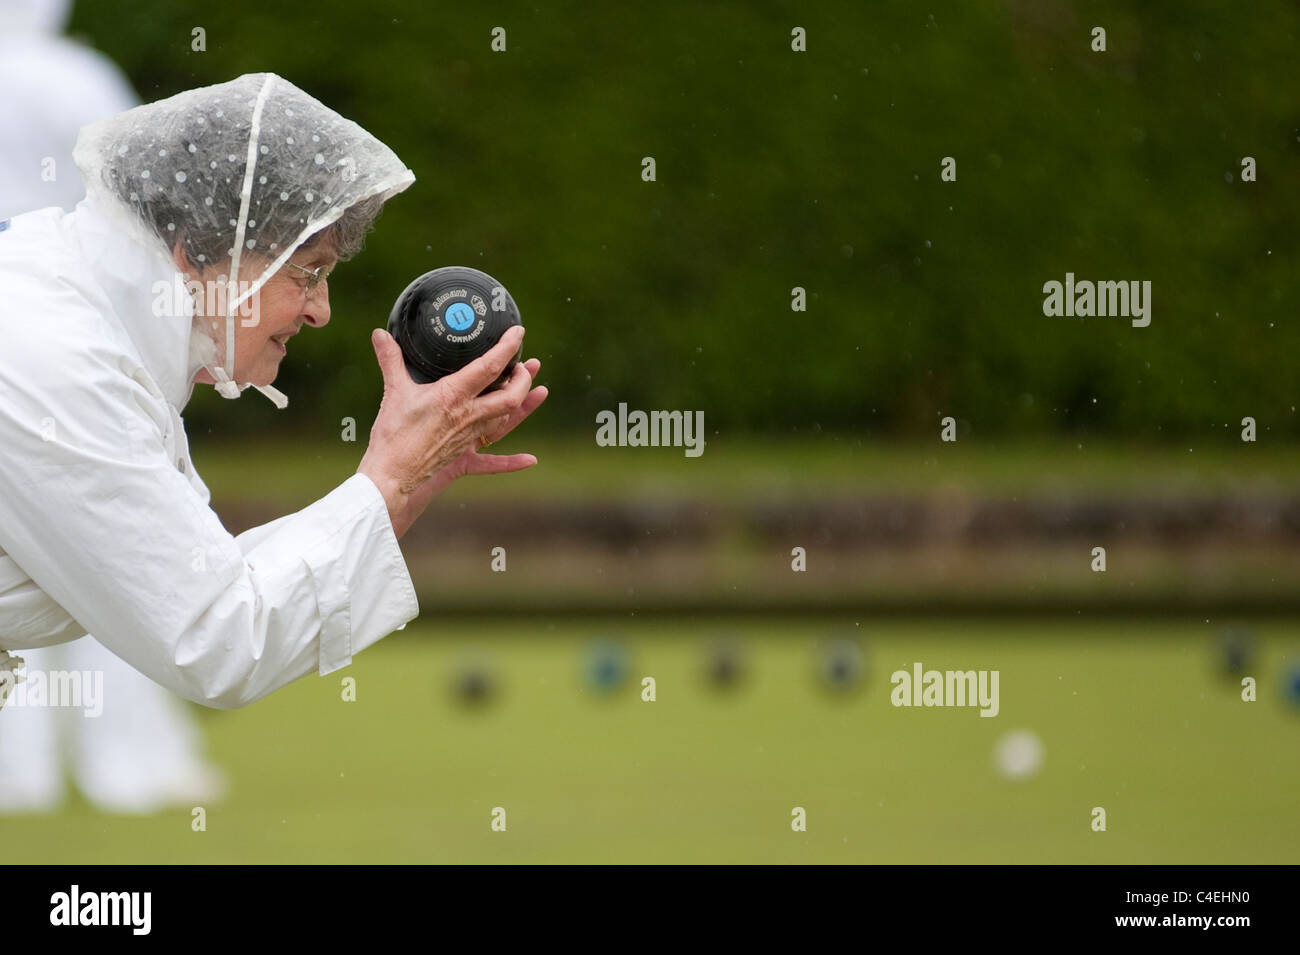 An active female pensioner takes part in a Sunday afternoon Lawn Bowls match in the rain - Stock Image